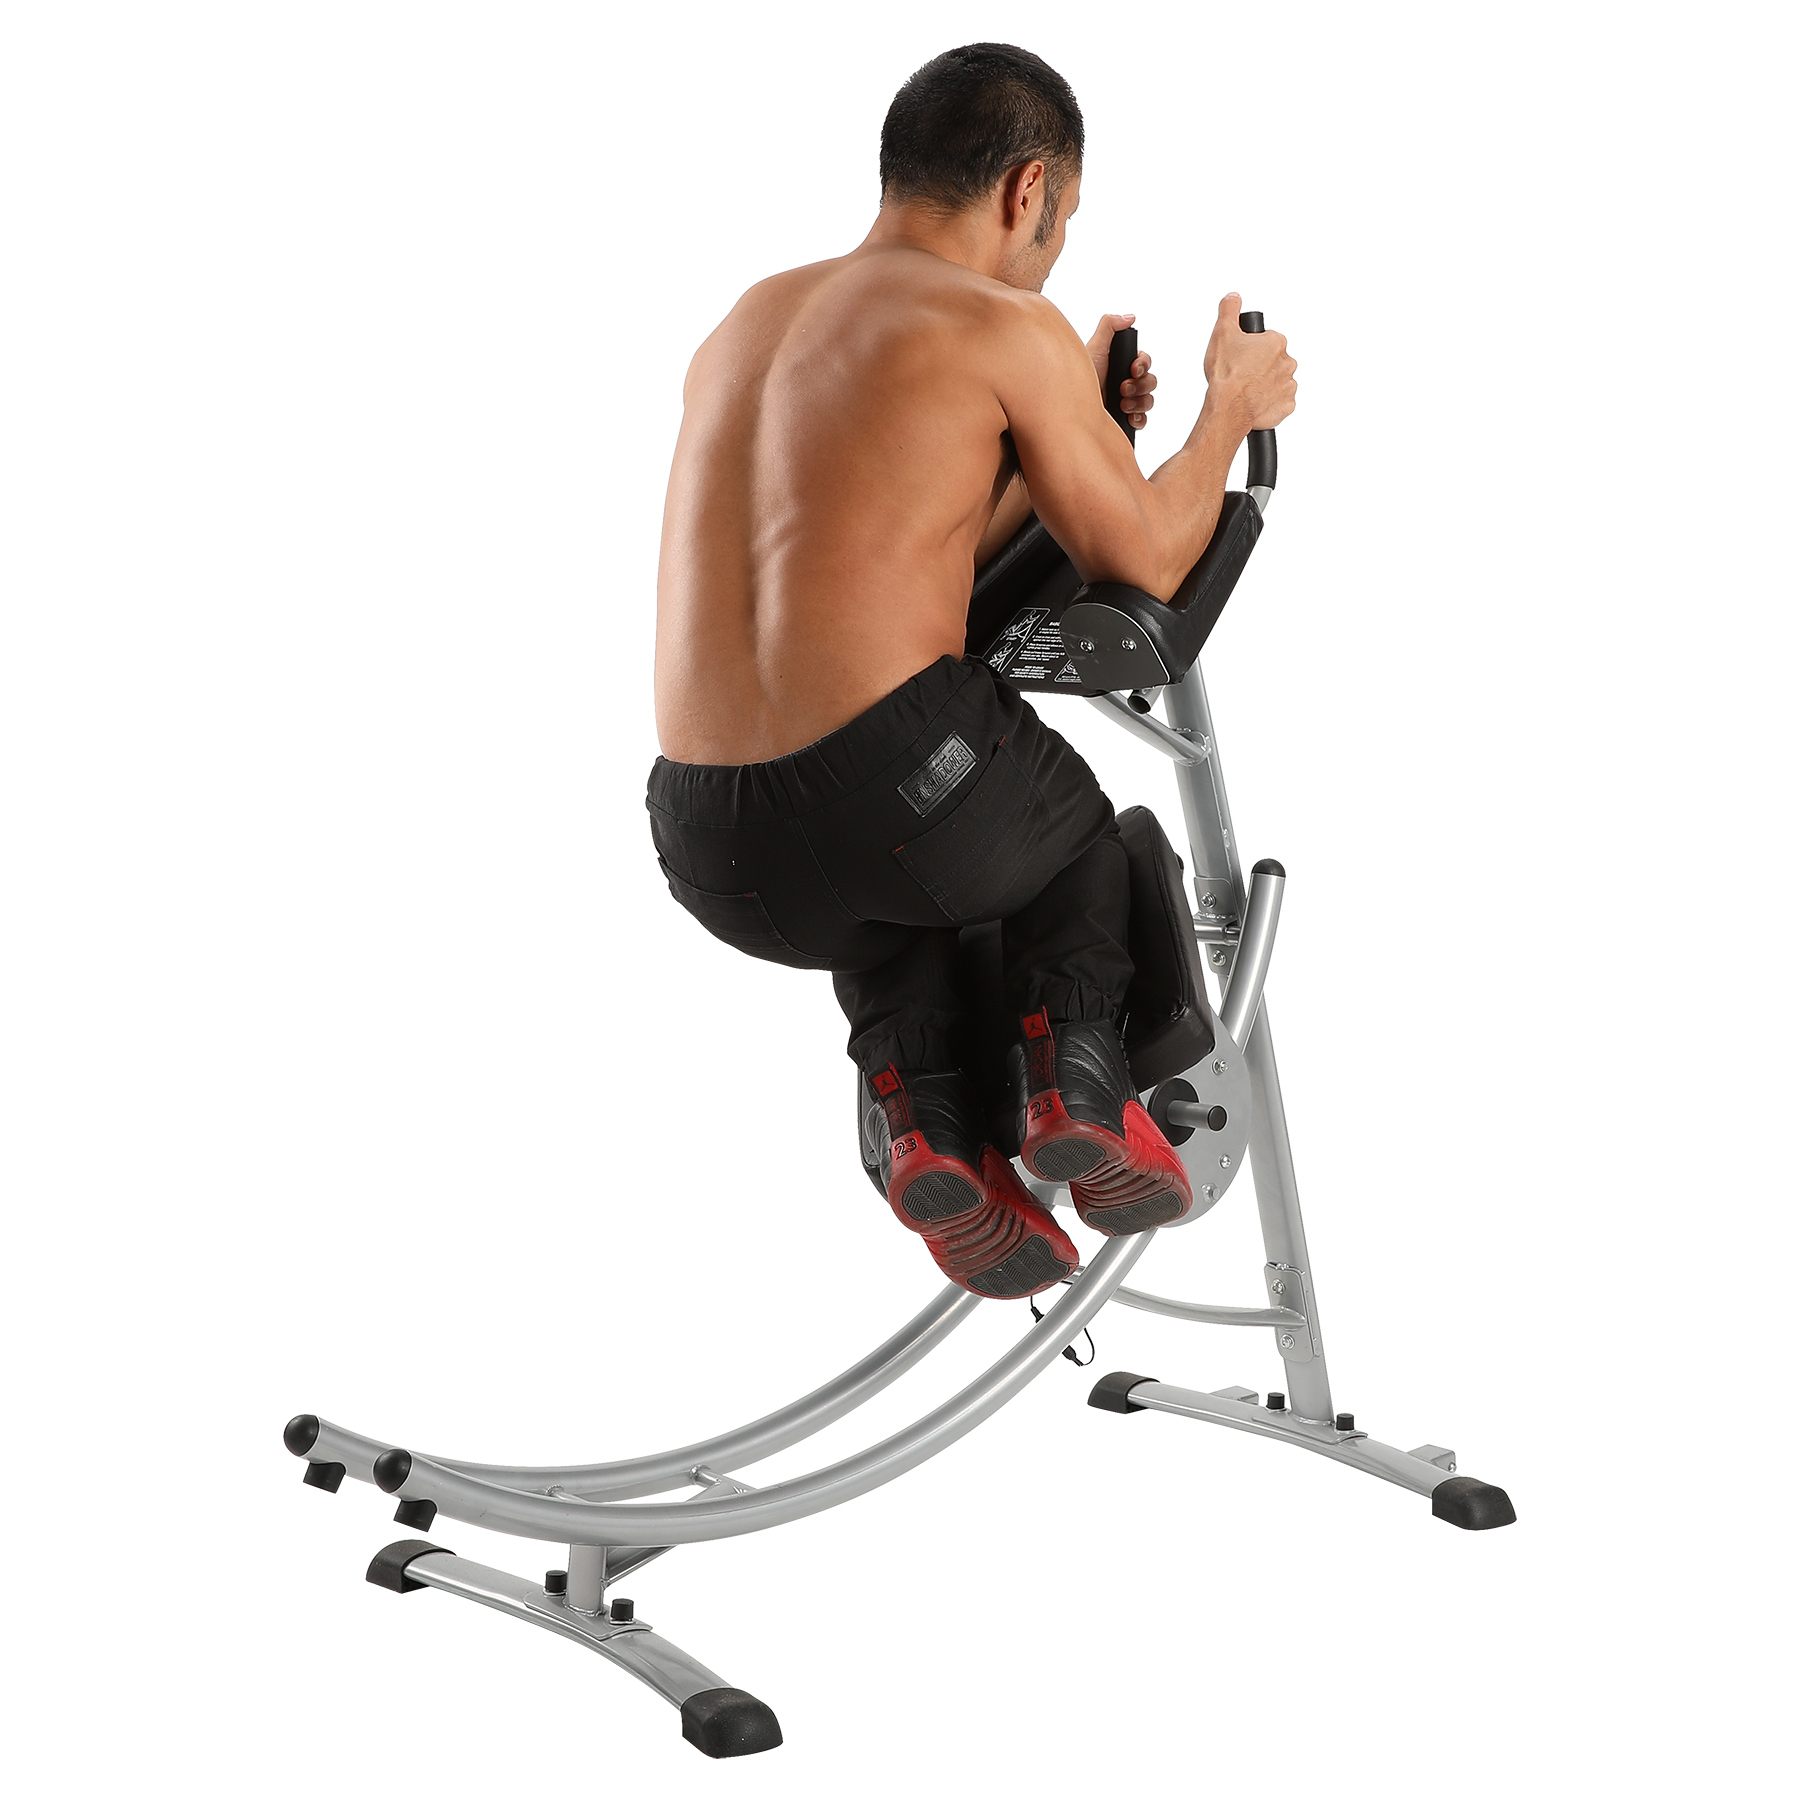 Abdominal Coaster Trainer Abdomen Abdominal Machine Fitness Equipment by Orion Motor Tech